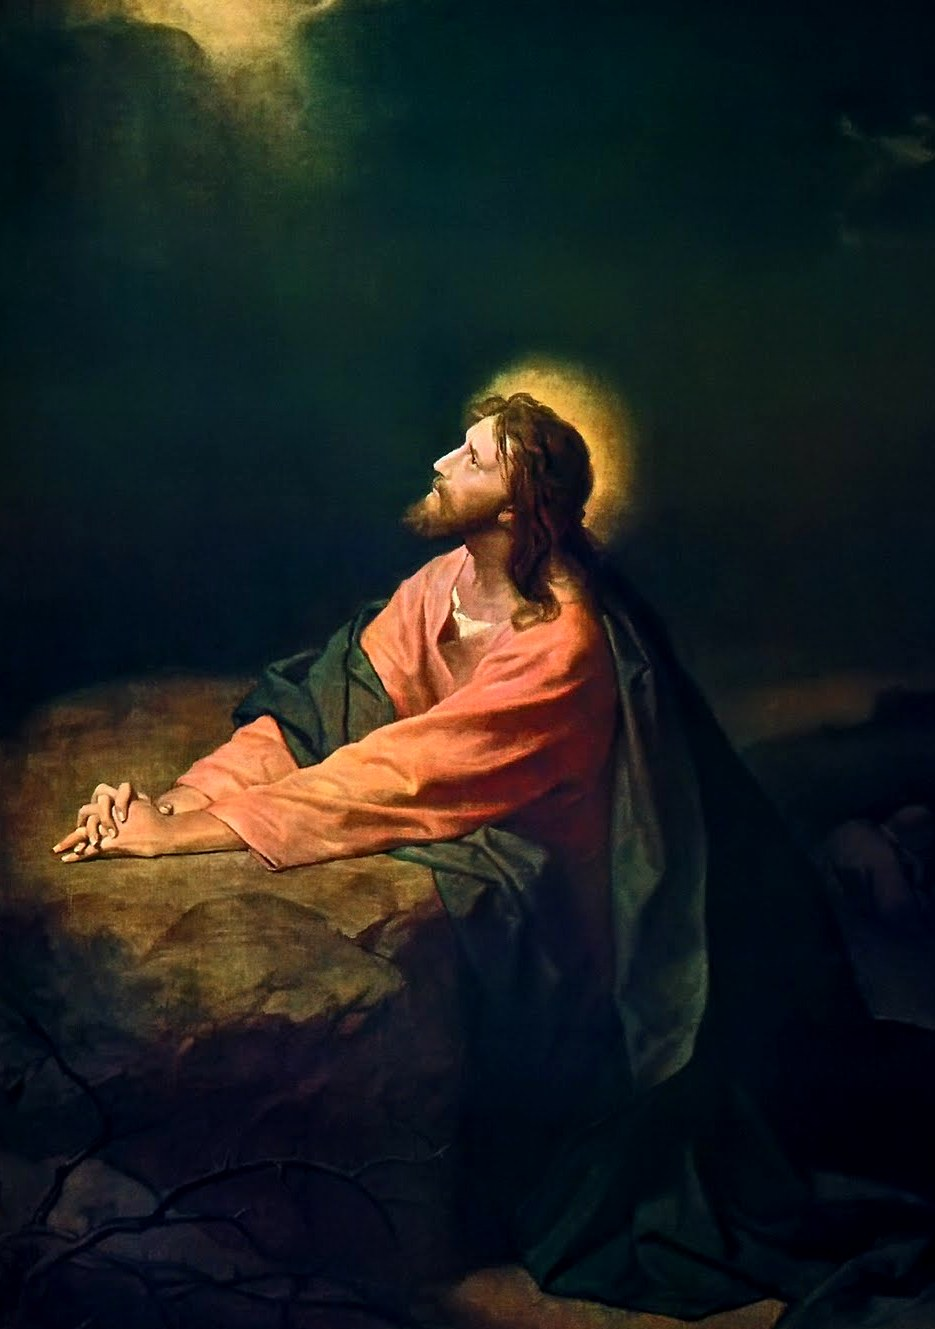 Sermon from October 6, 2013/ Jesus Alone is Our Rock, Salvation, and Fortress - Image 6